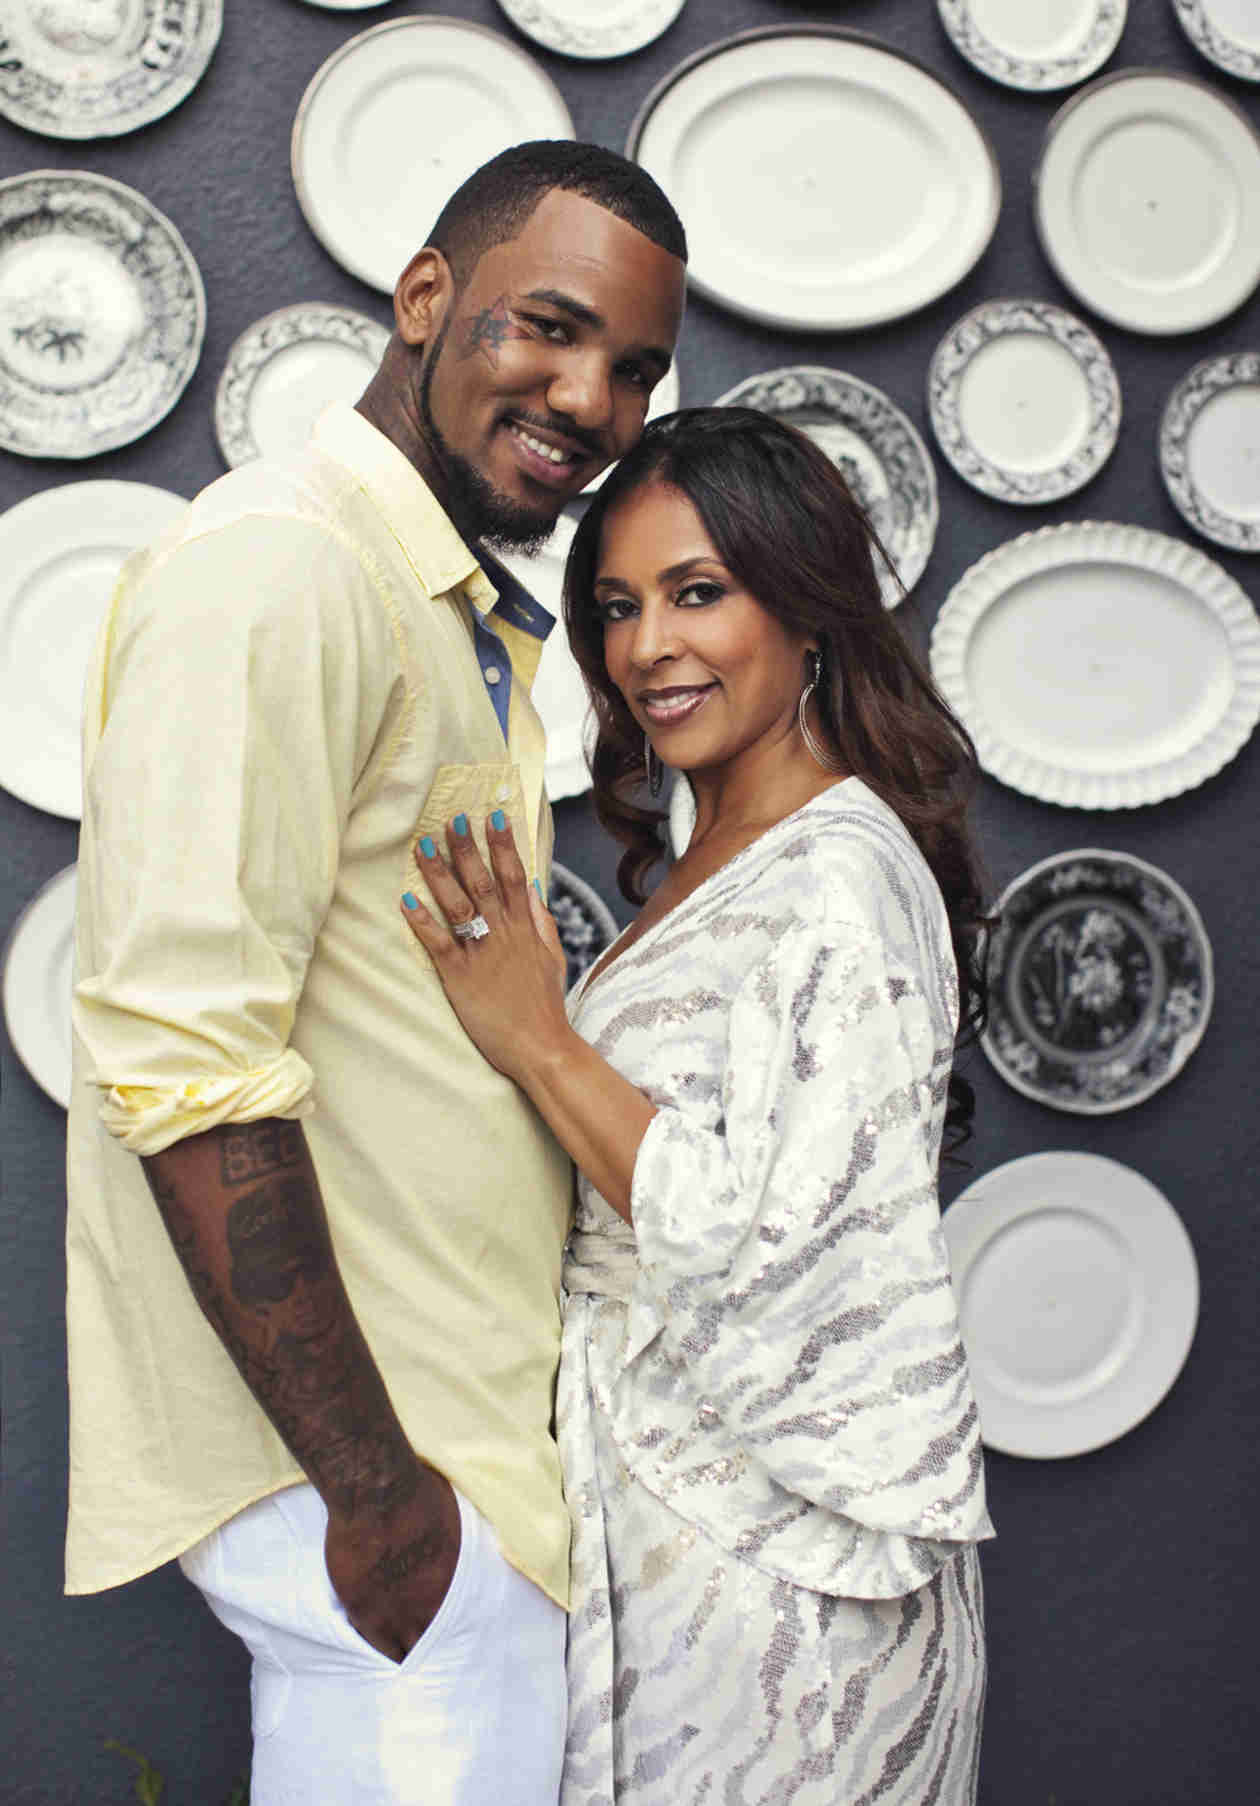 The Game Ordered to Stay Away From Estranged Fianceé Tiffney Cambridge